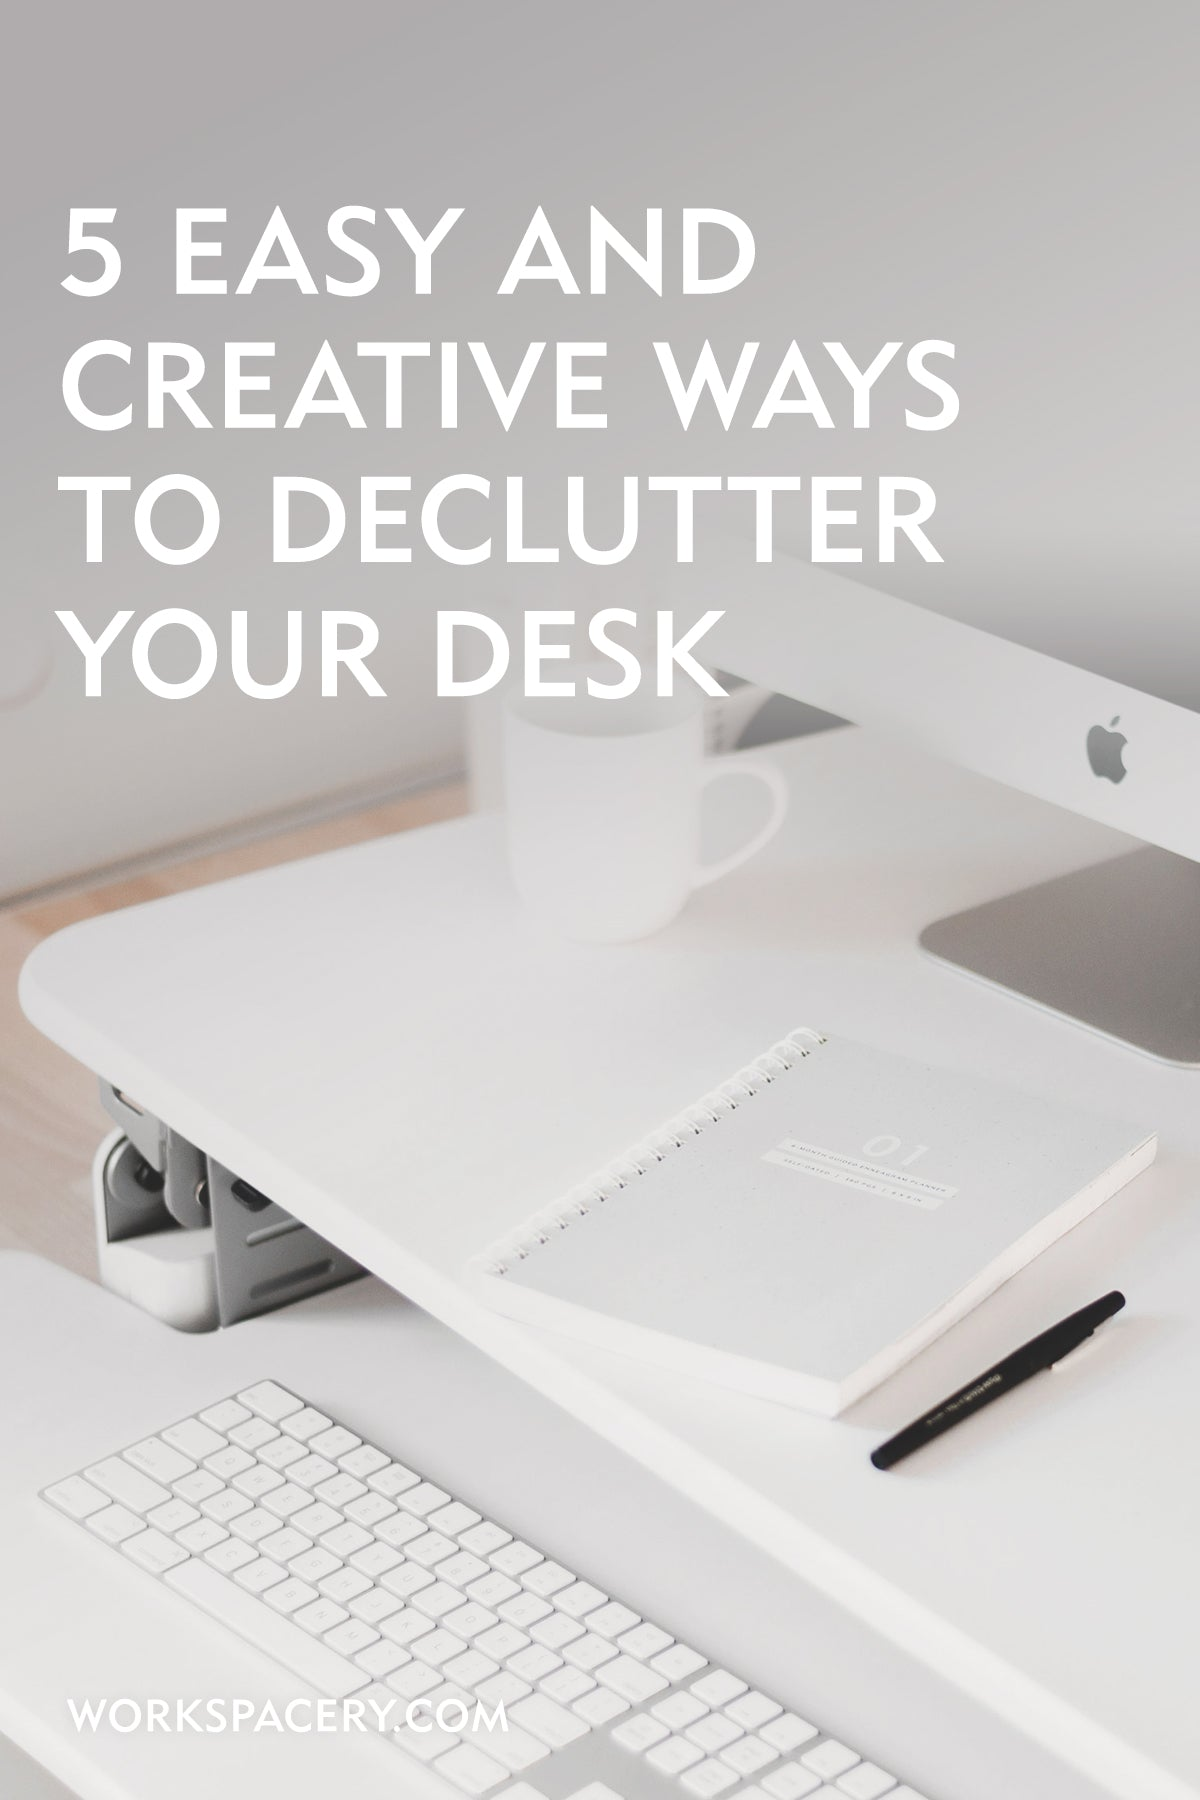 5 Easy + Creative Ways to Declutter Your Desk